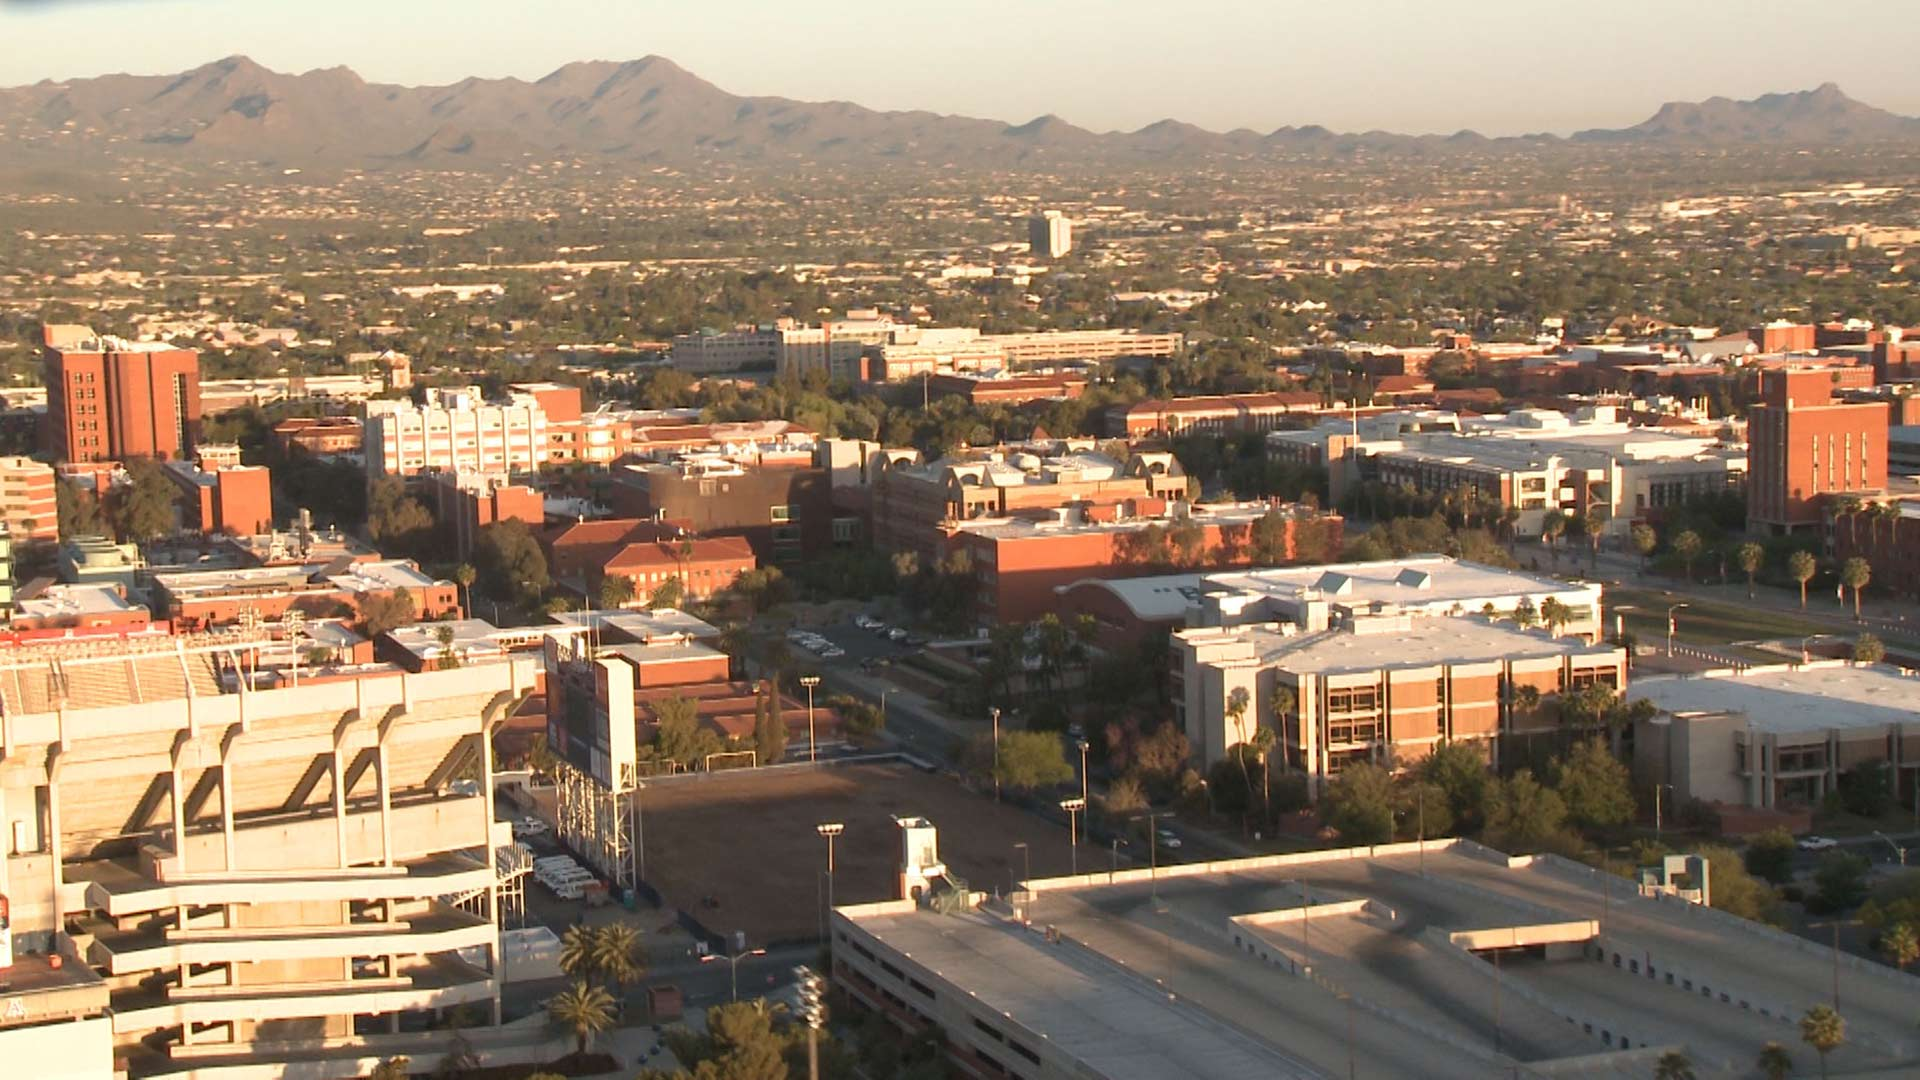 An aerial view of the University of Arizona campus.